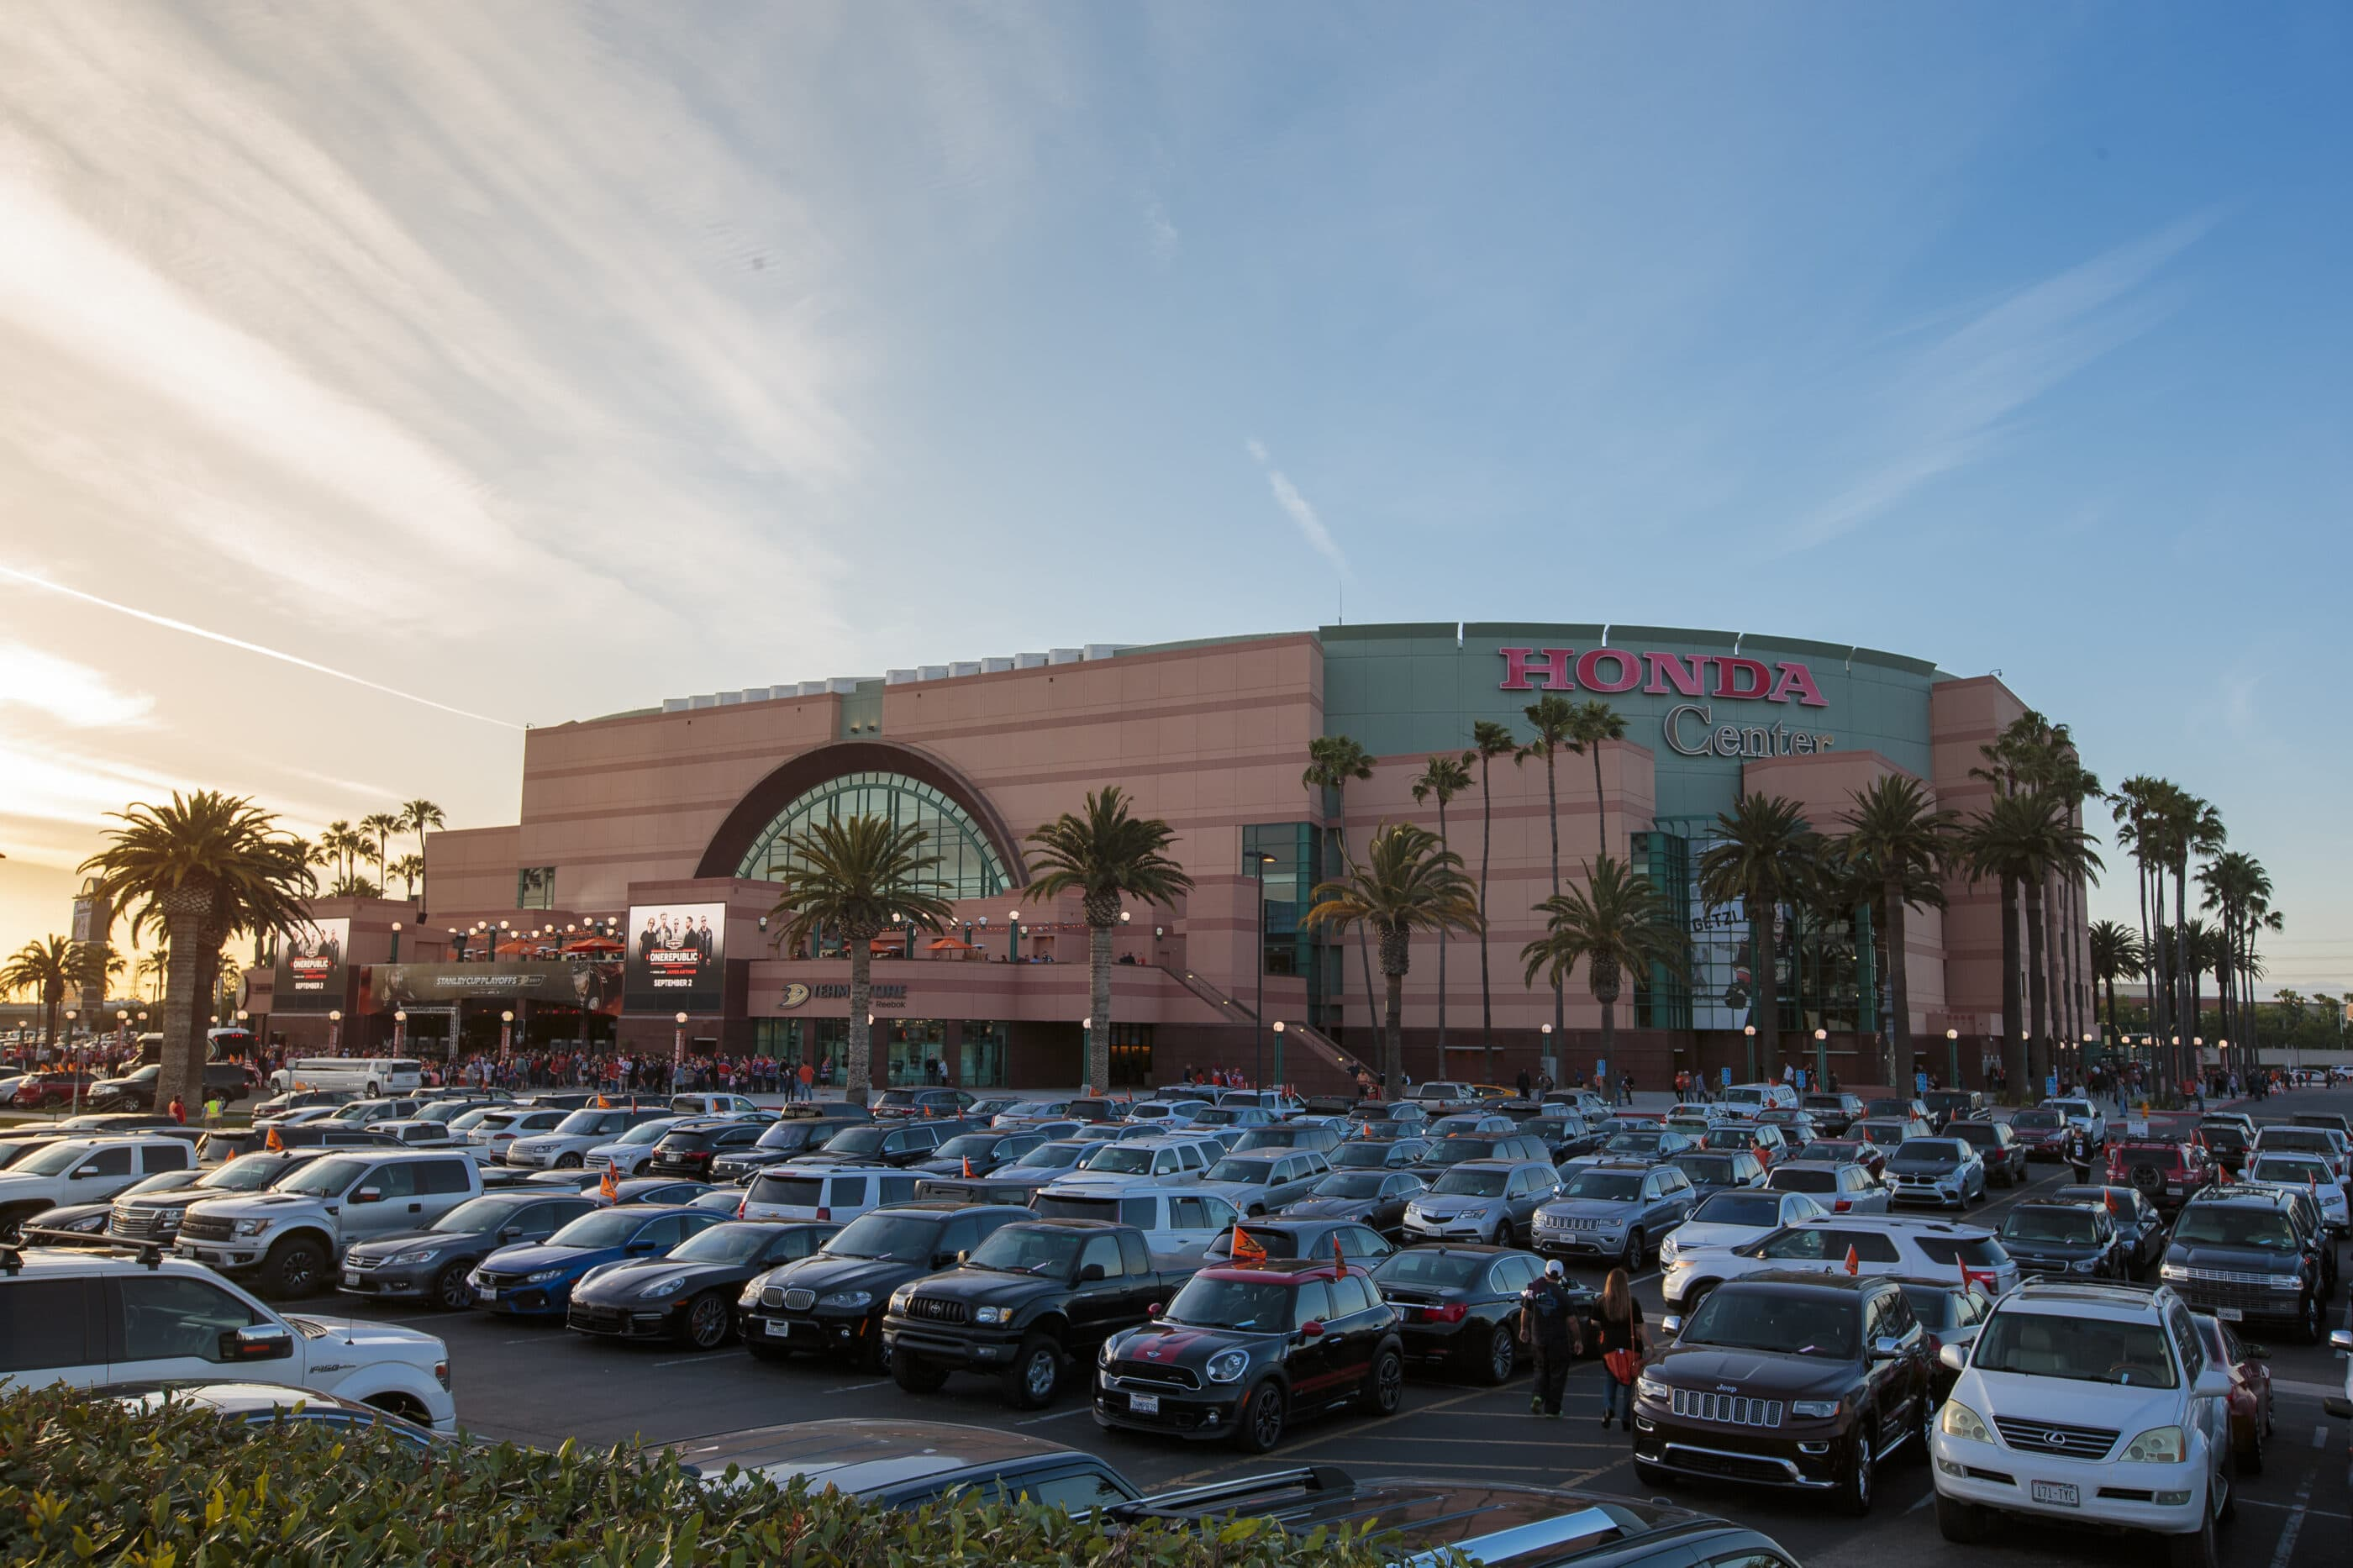 Exterior view over the parking lot to the entrance of the Honda Center in Anaheim.